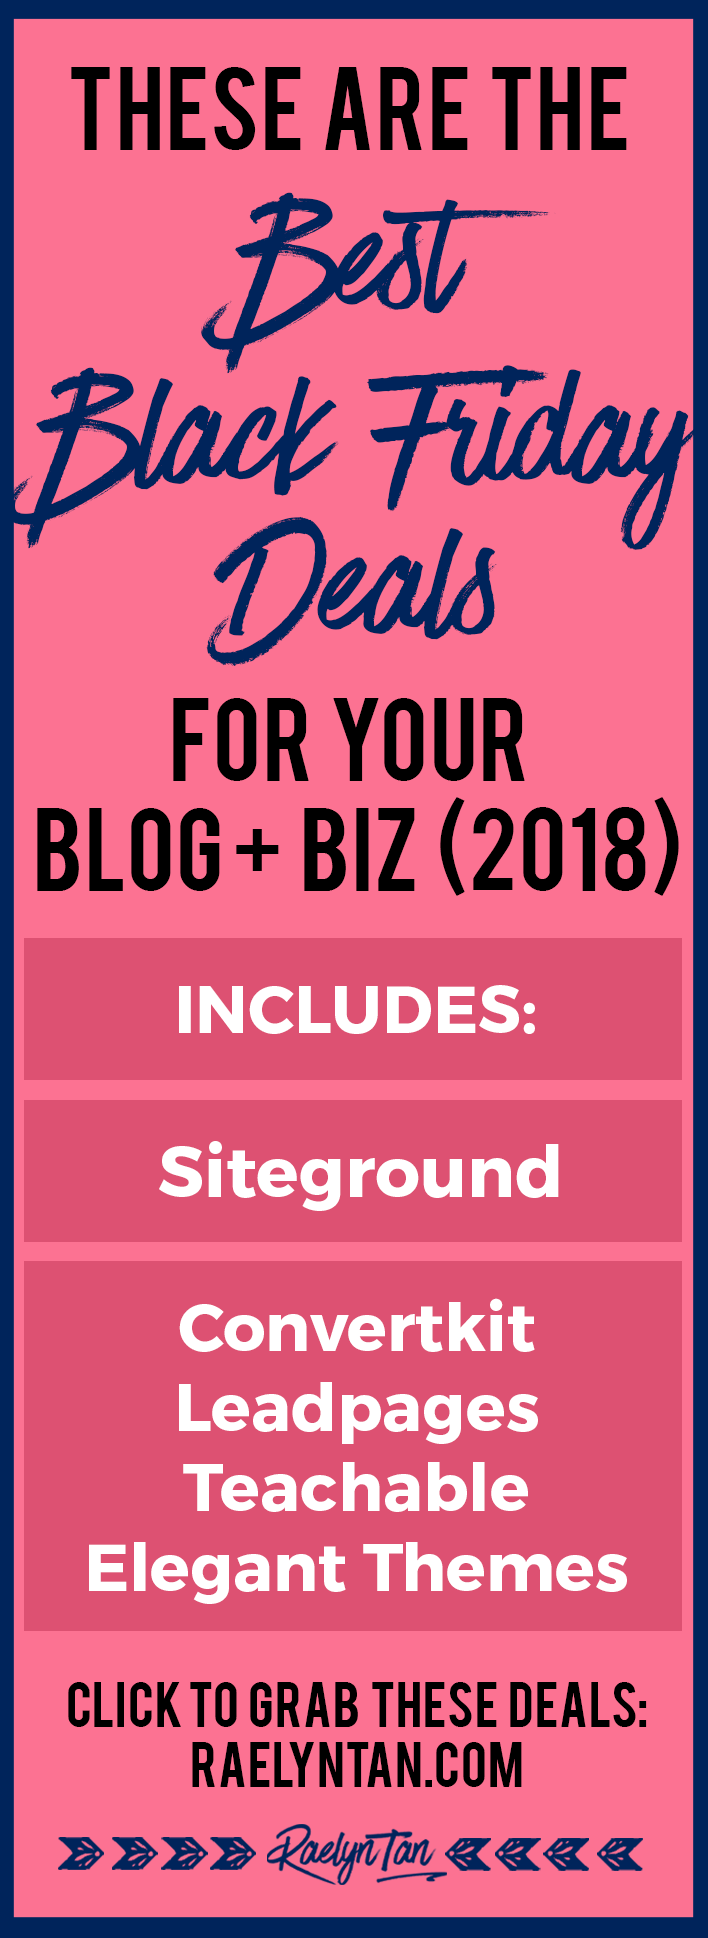 15 Of The Best Black Friday & Cyber Monday 2018 Deals For Bloggers & Online Entrepreneurs You Must Know About! Siteground, Convertkit, Divi, Studiopress, and much more! Catch the sale before its too late!